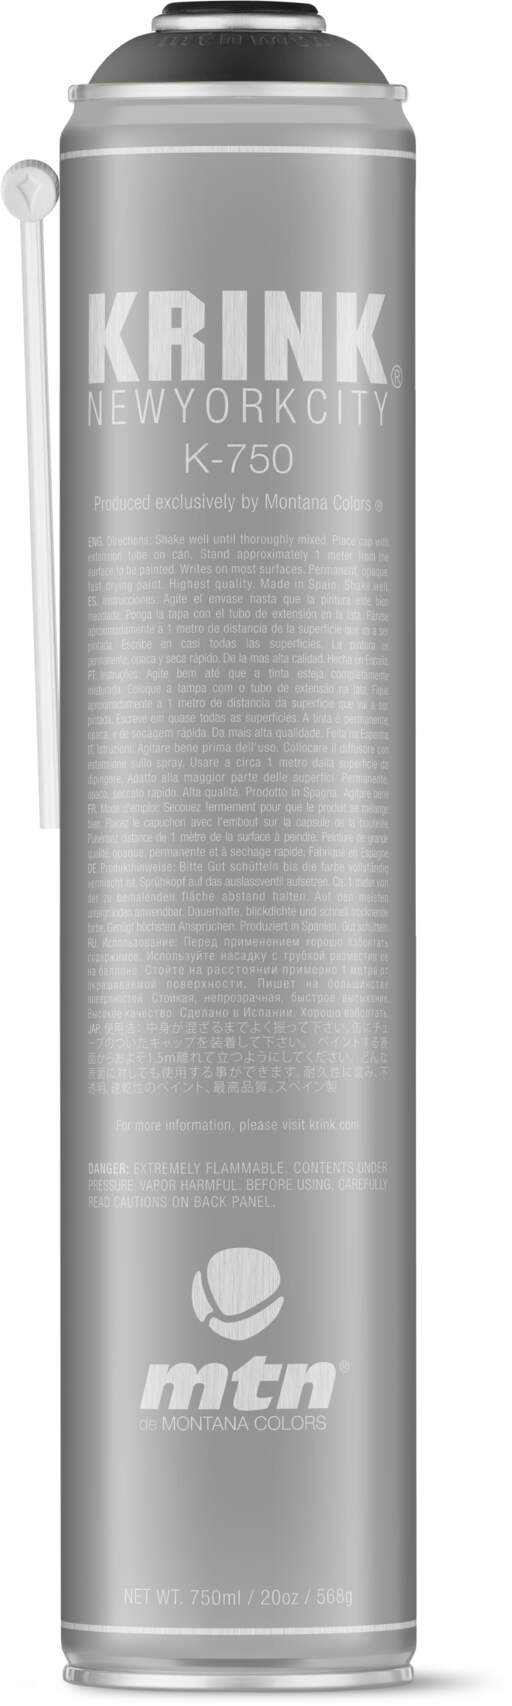 mtn: MTN Krink K-750 750ml, Spray Can